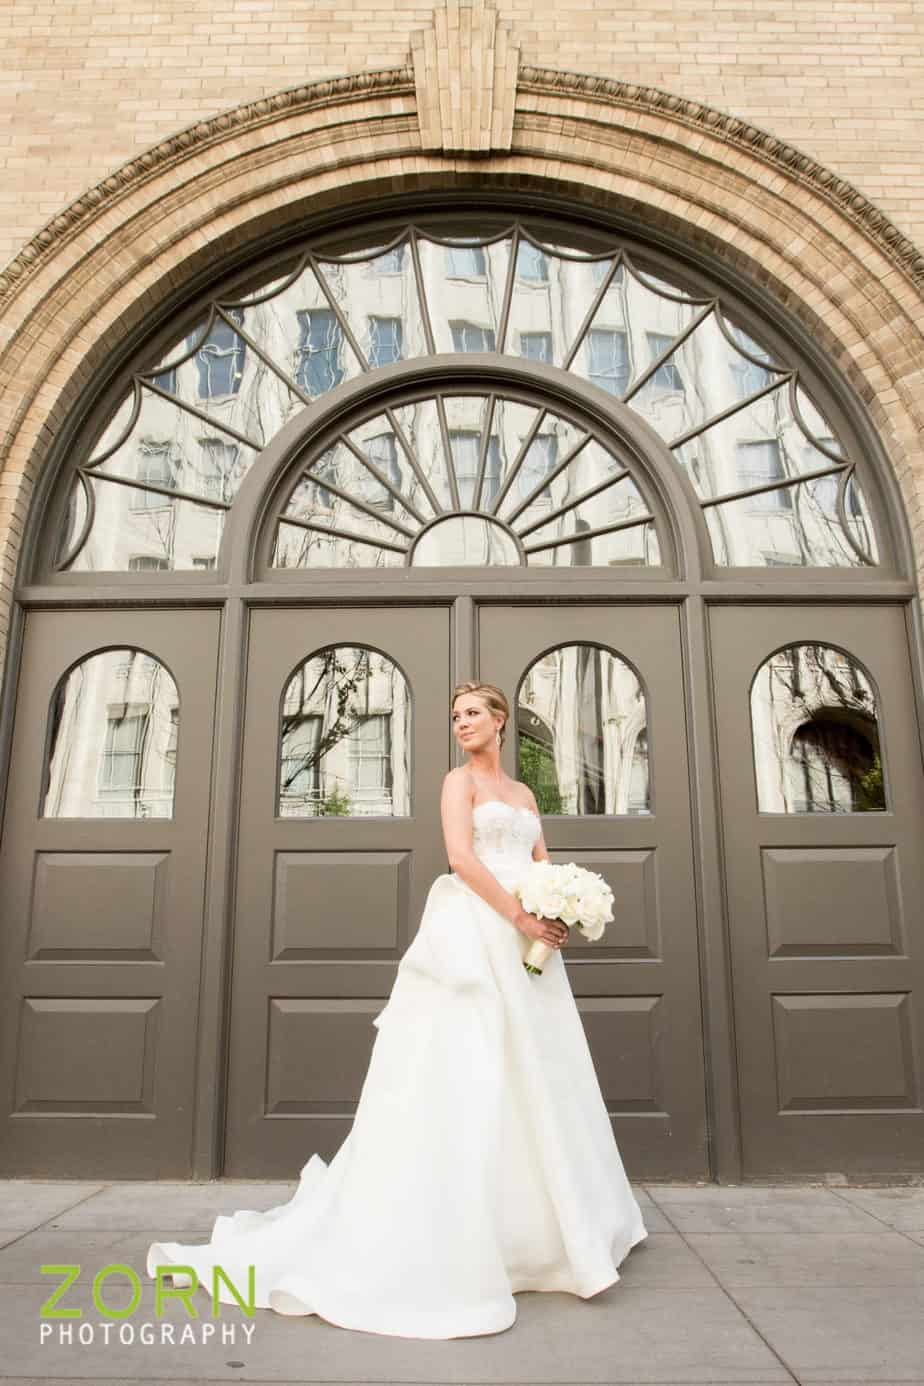 zorn-wedding-photography_cloud-9-denver-wedding-planner